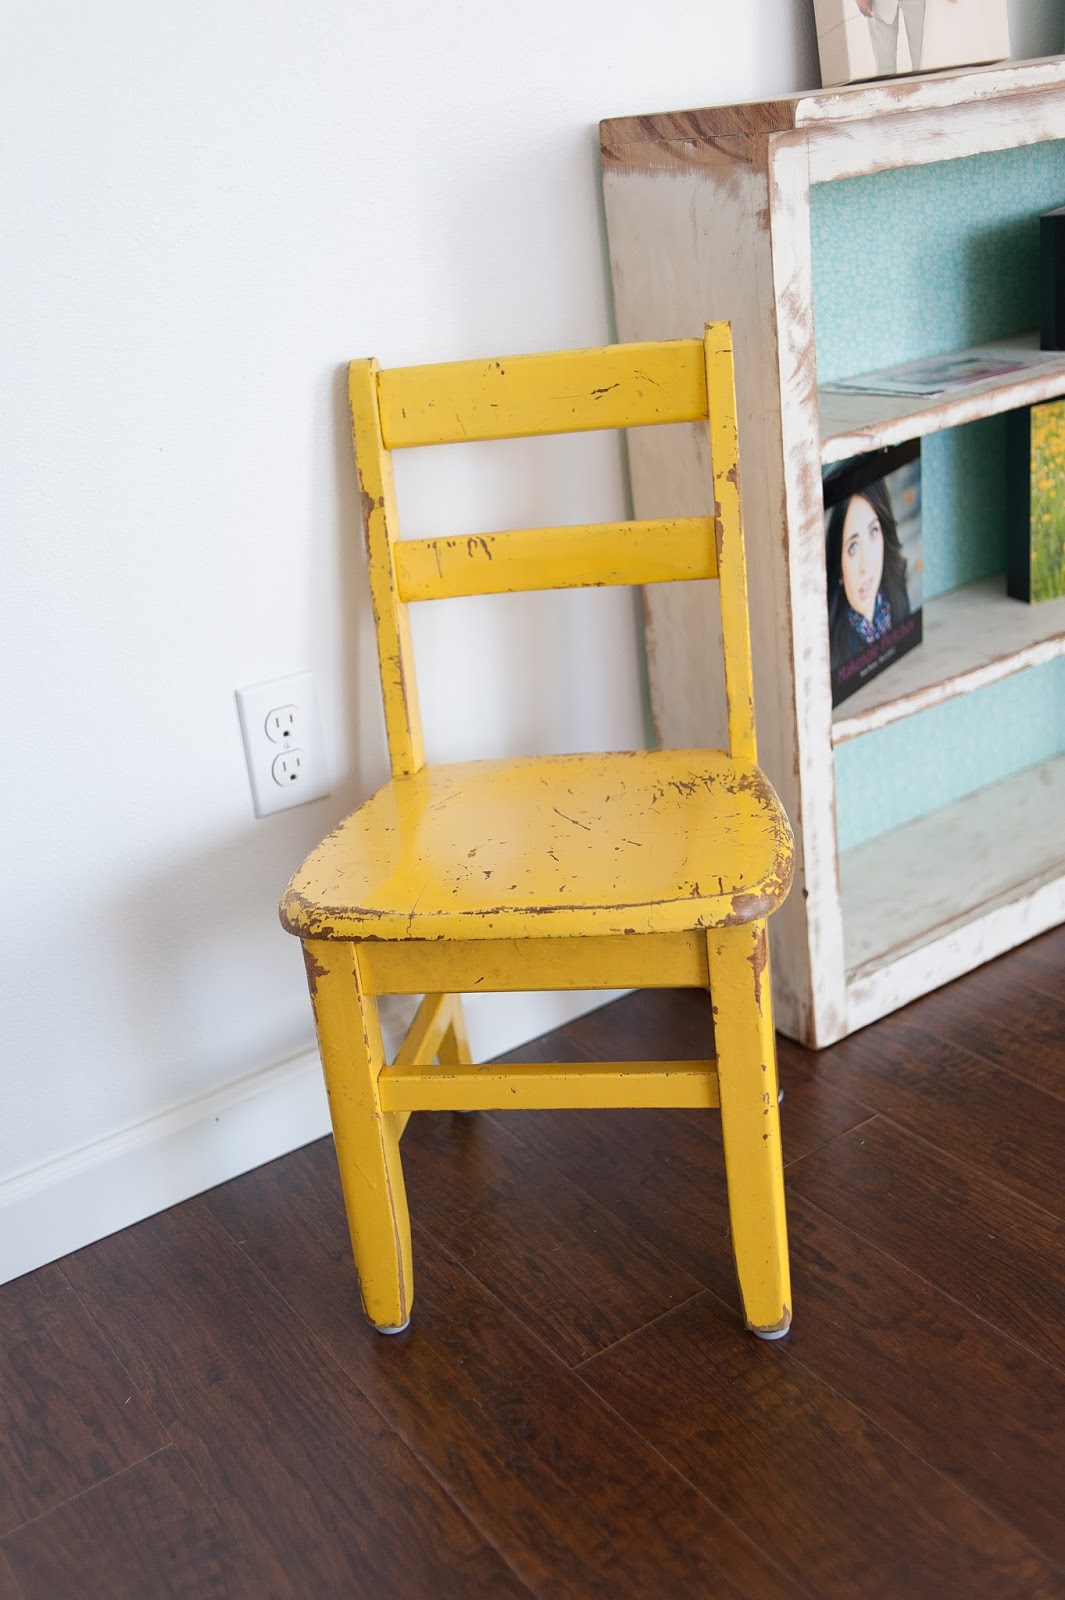 Vintage Yellow chair adds a pop of color to studio